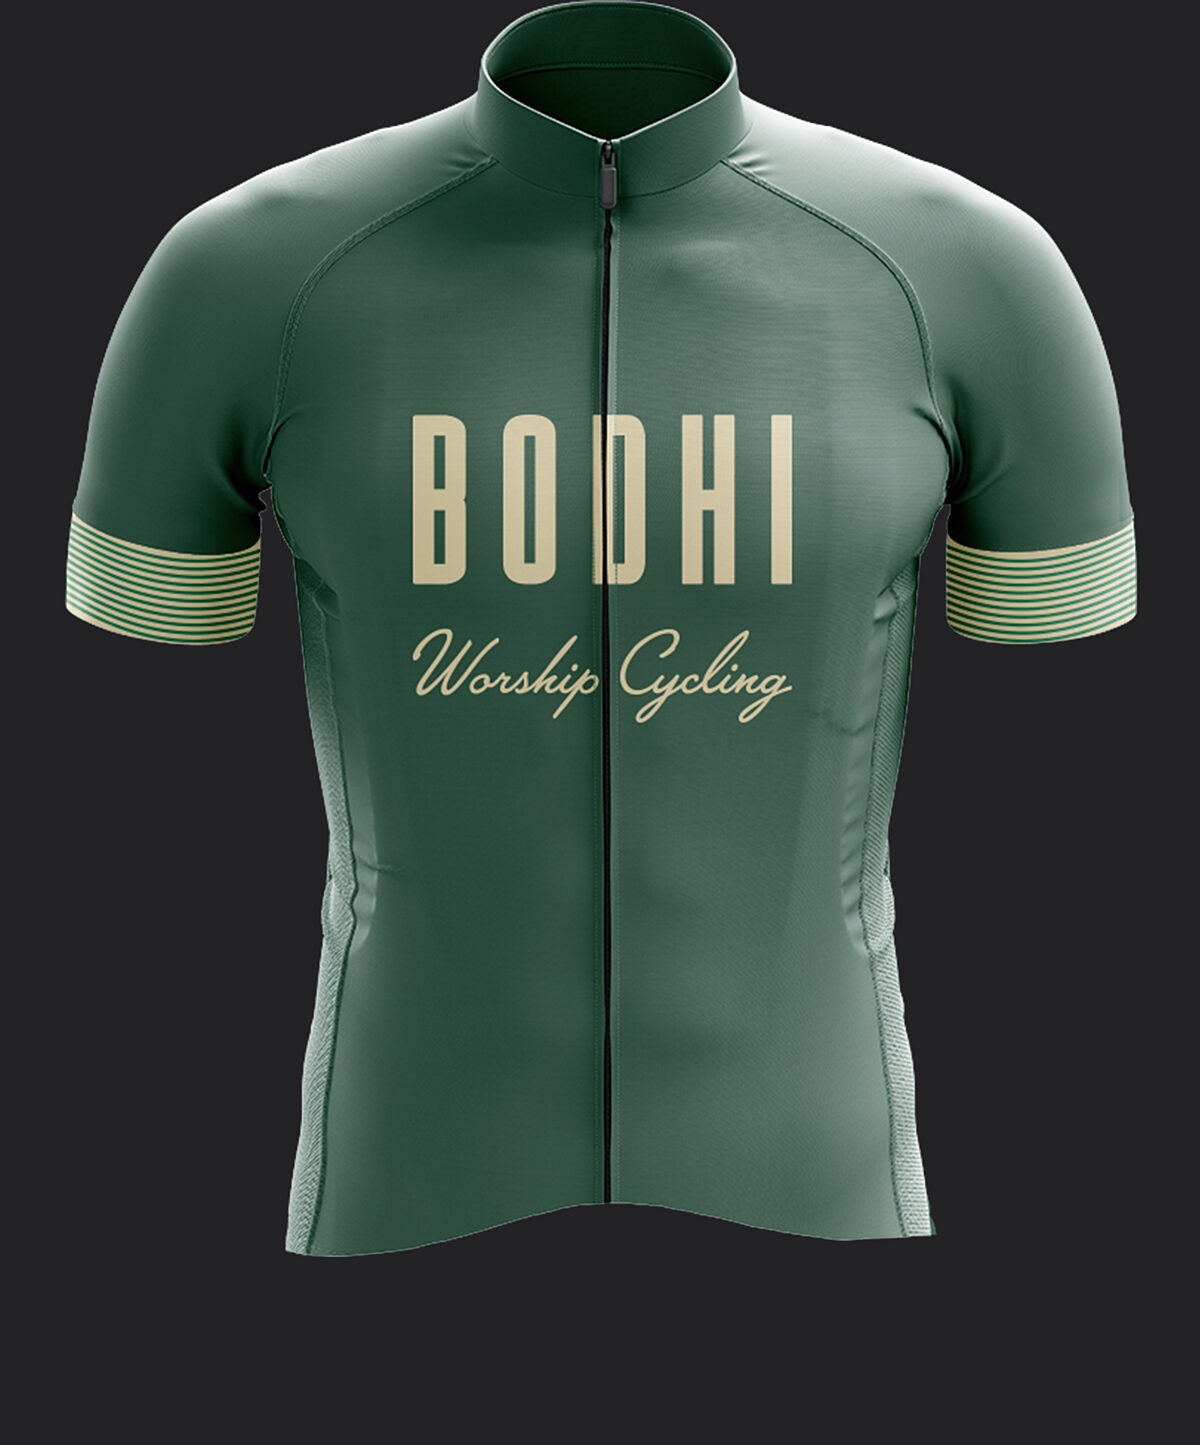 Bodhi collection green